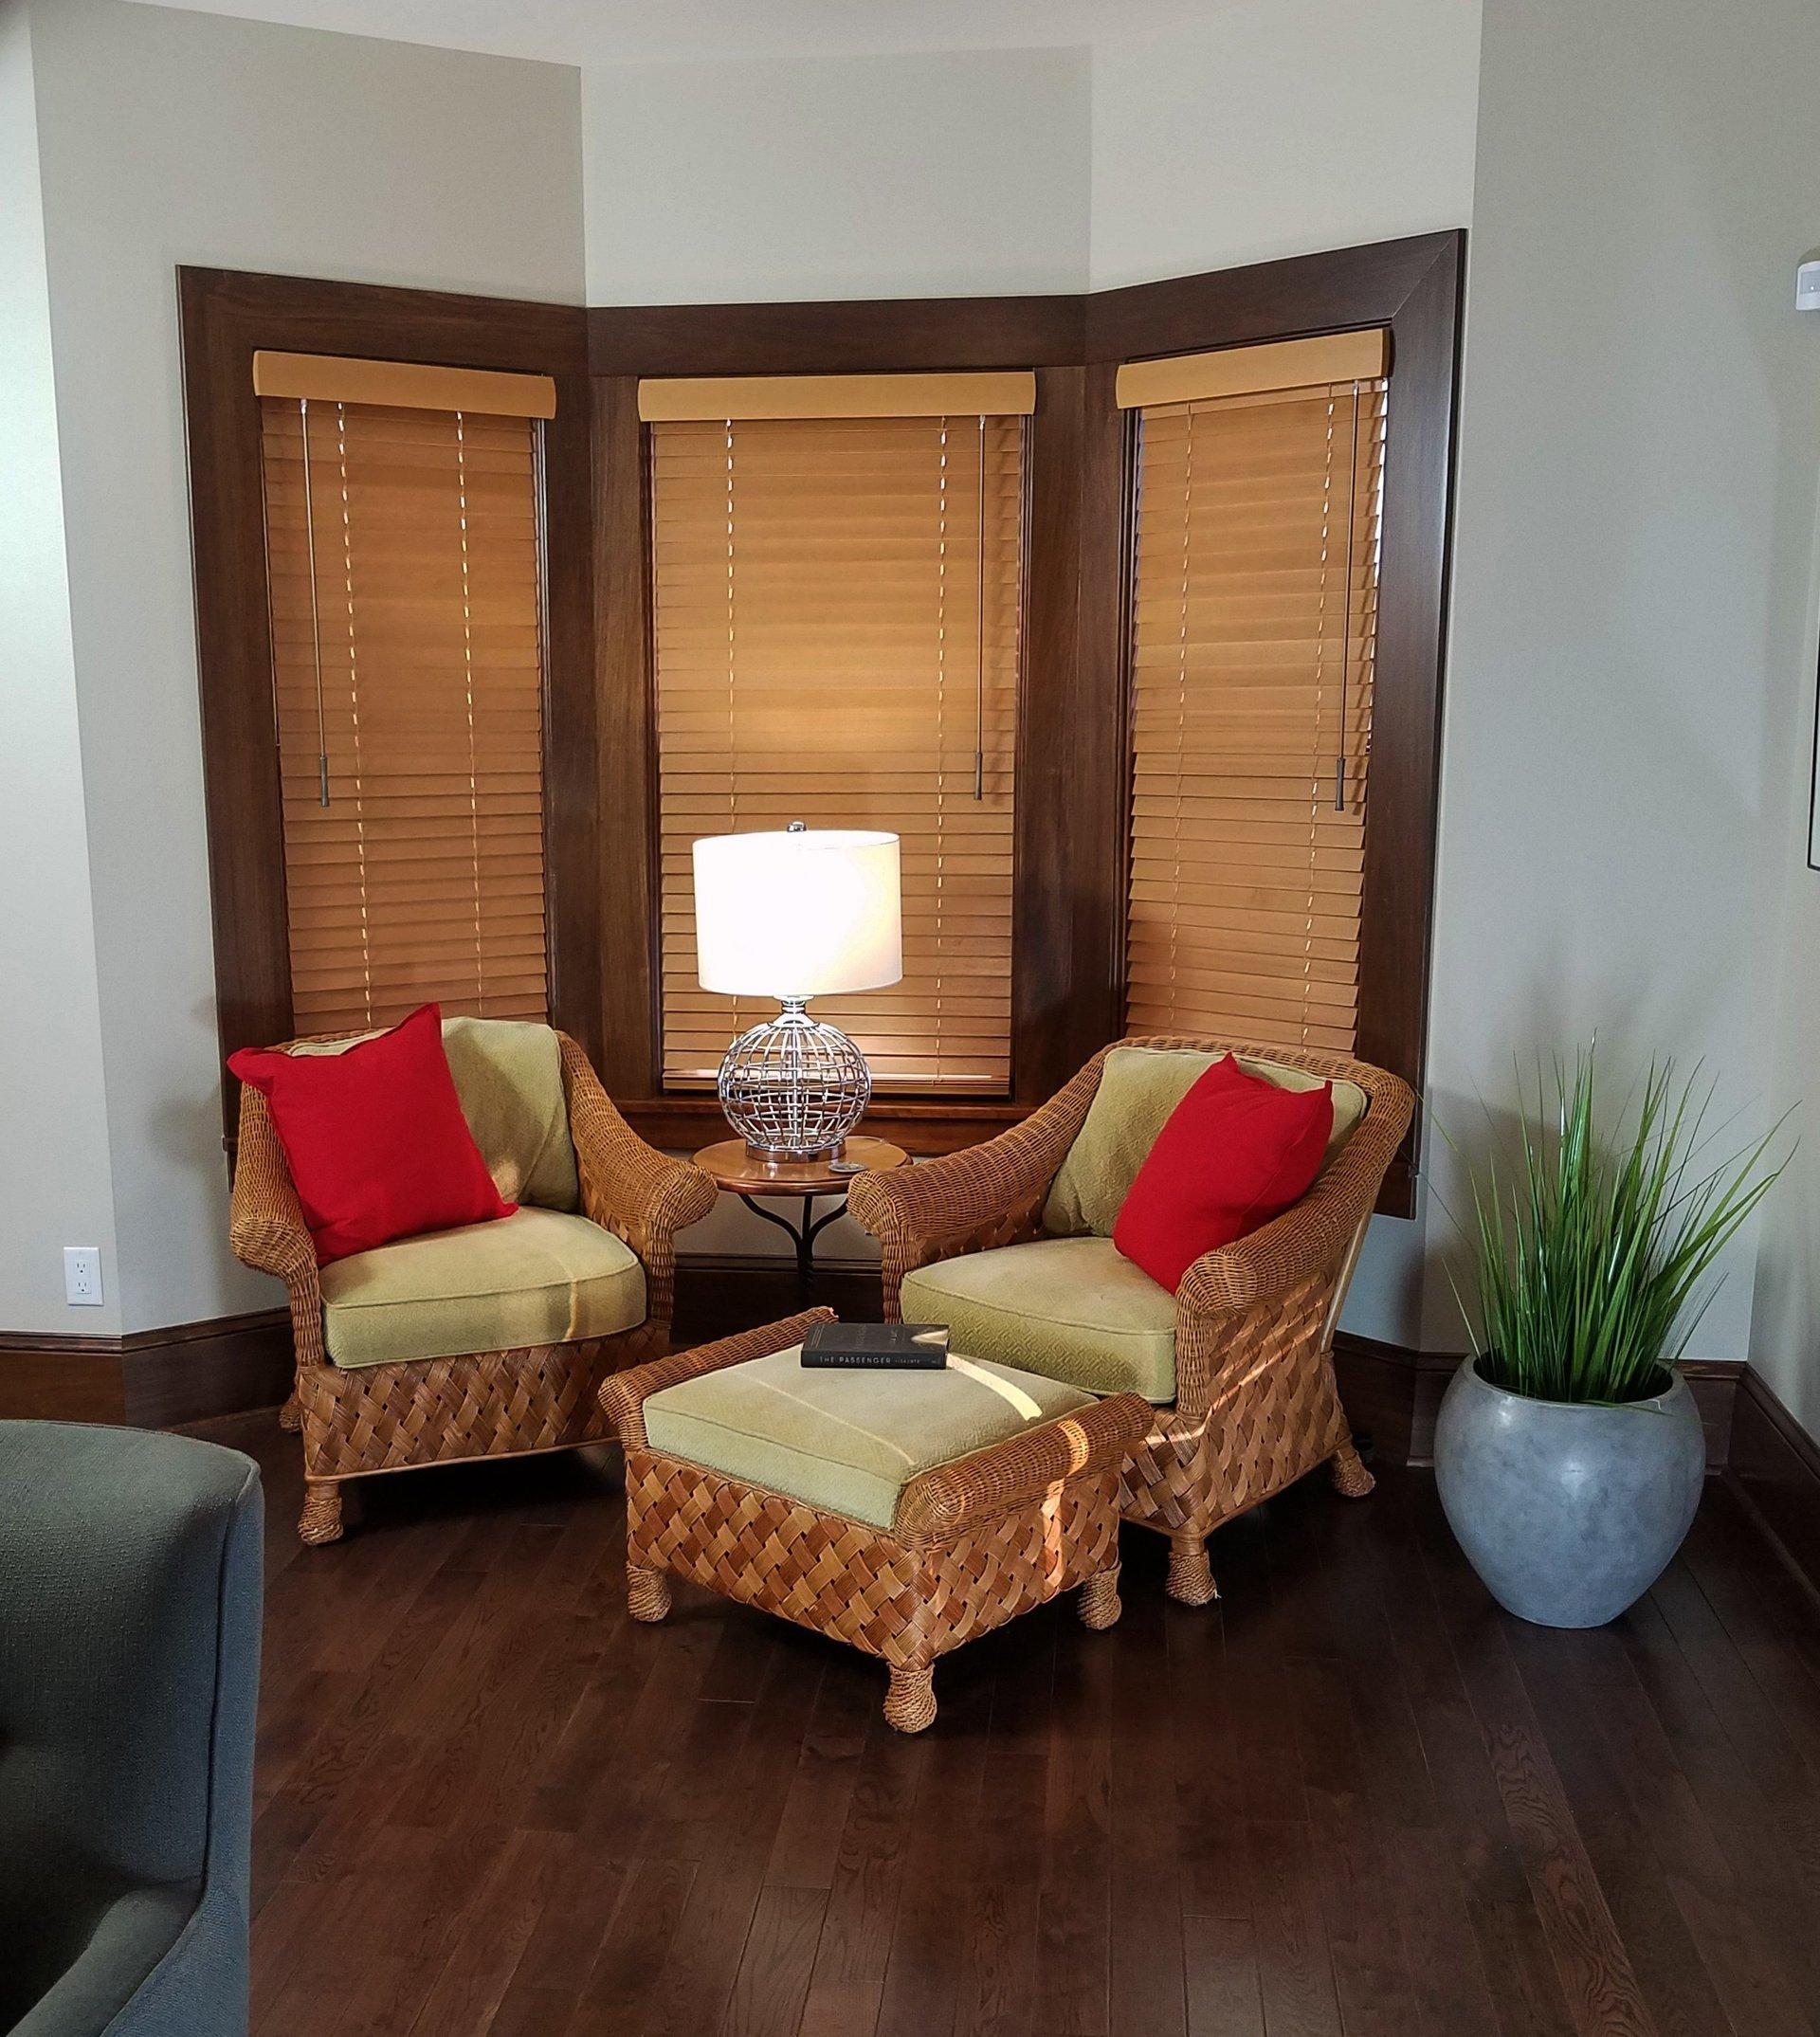 whole house remodel, madison WI, bay window, wood window casing, oak plank floor, red accent pillows